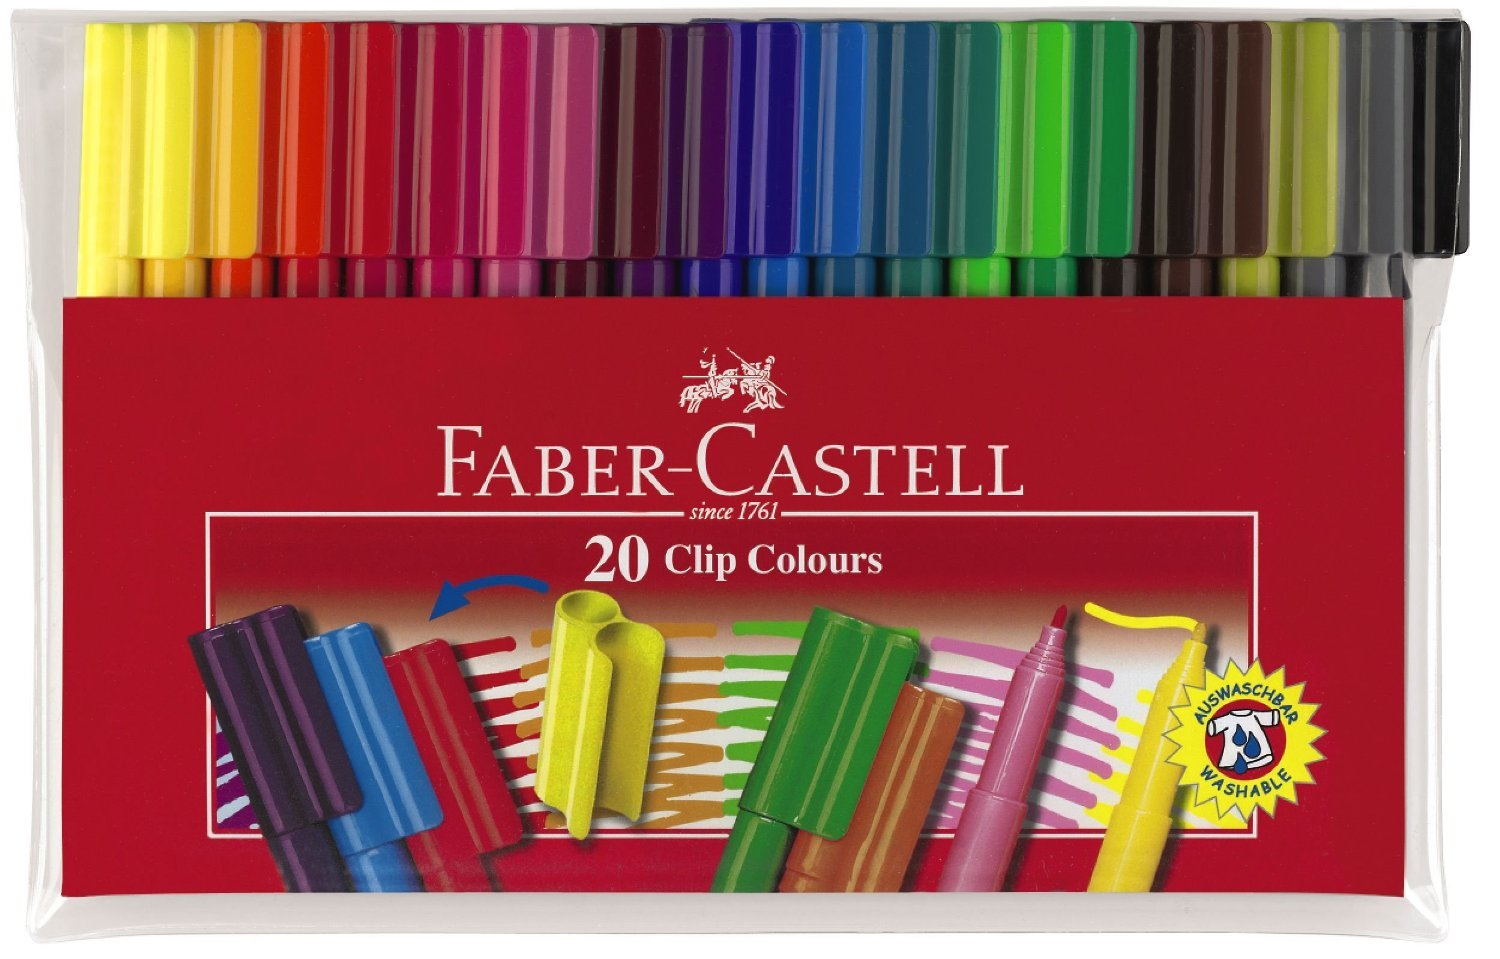 Faber-Castell Connector Pens: Felt Tip - Pack of 20 image